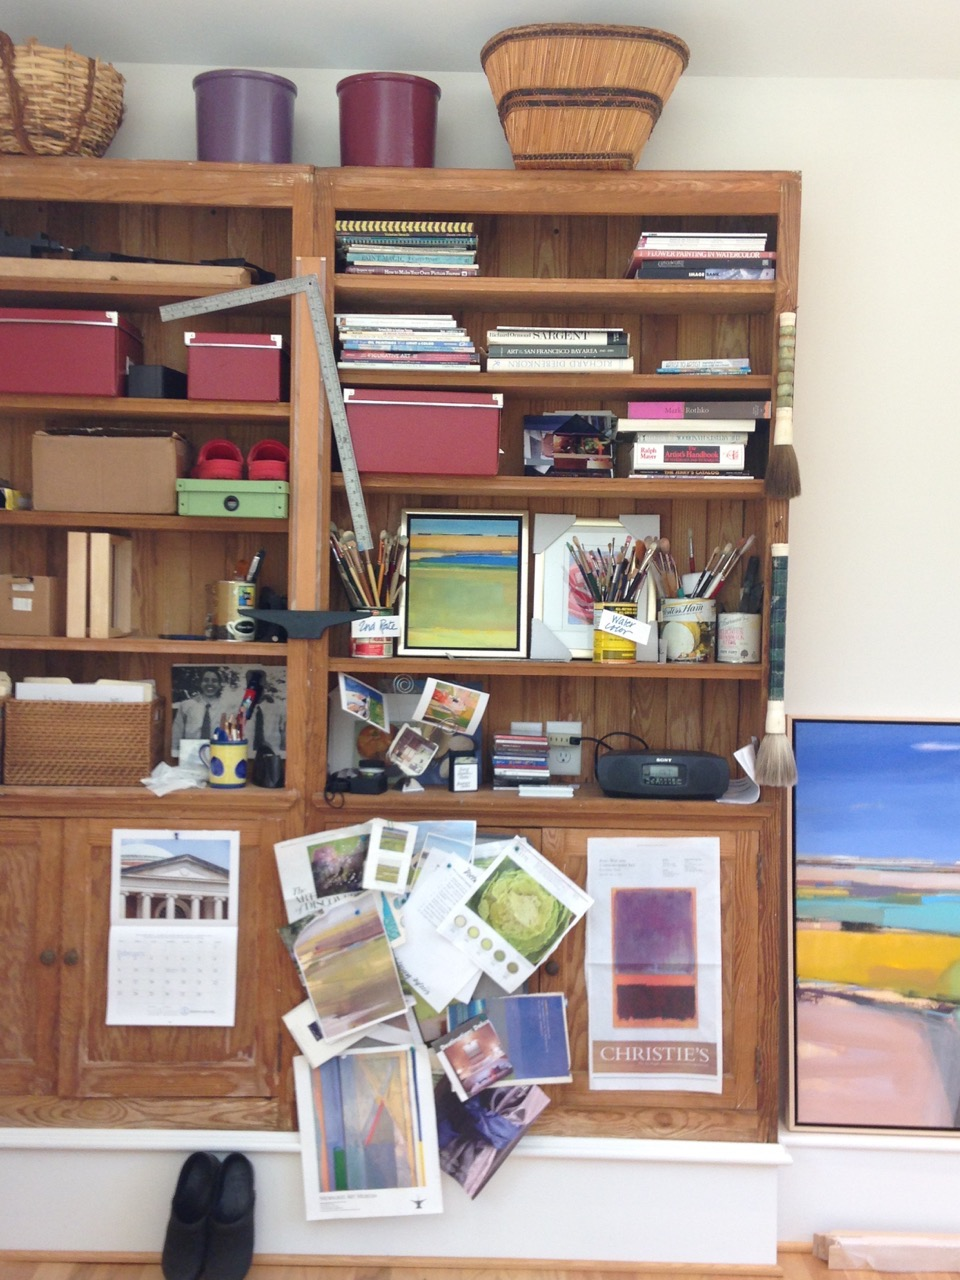 mary rountree moore's studio in chapel hill